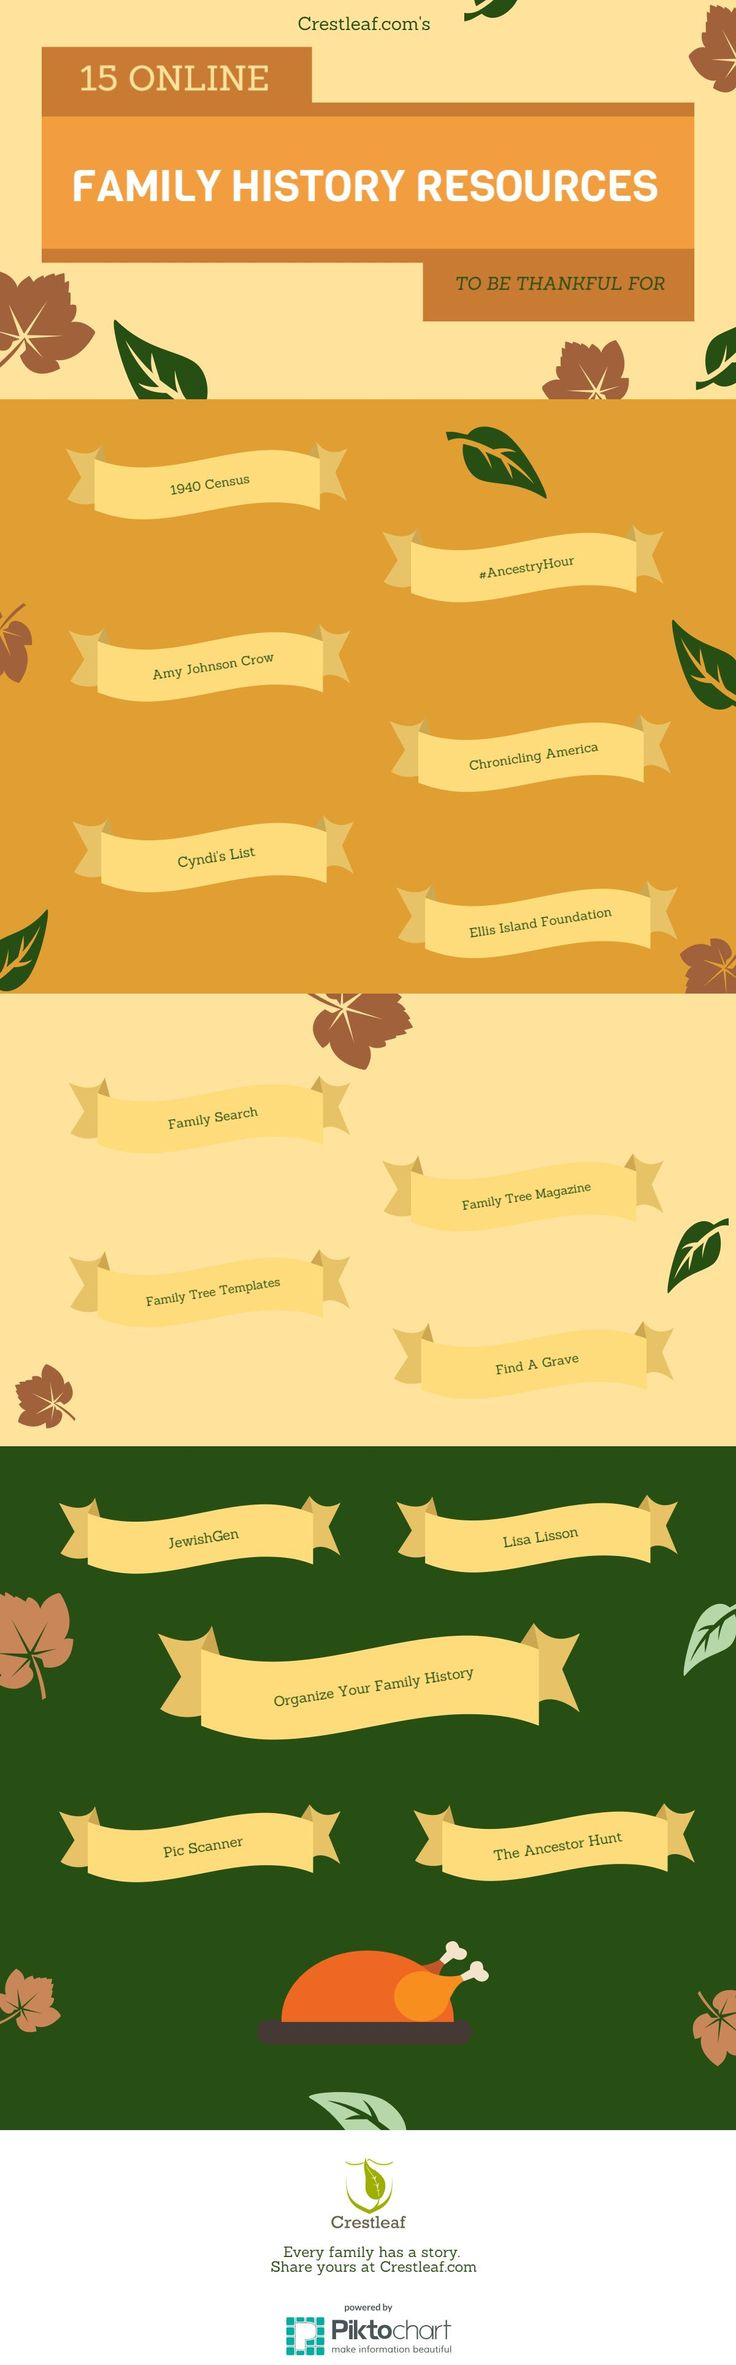 best ideas about family history center family thanksgiving family history genealogy infographic 15 online family history resources to be thankful for